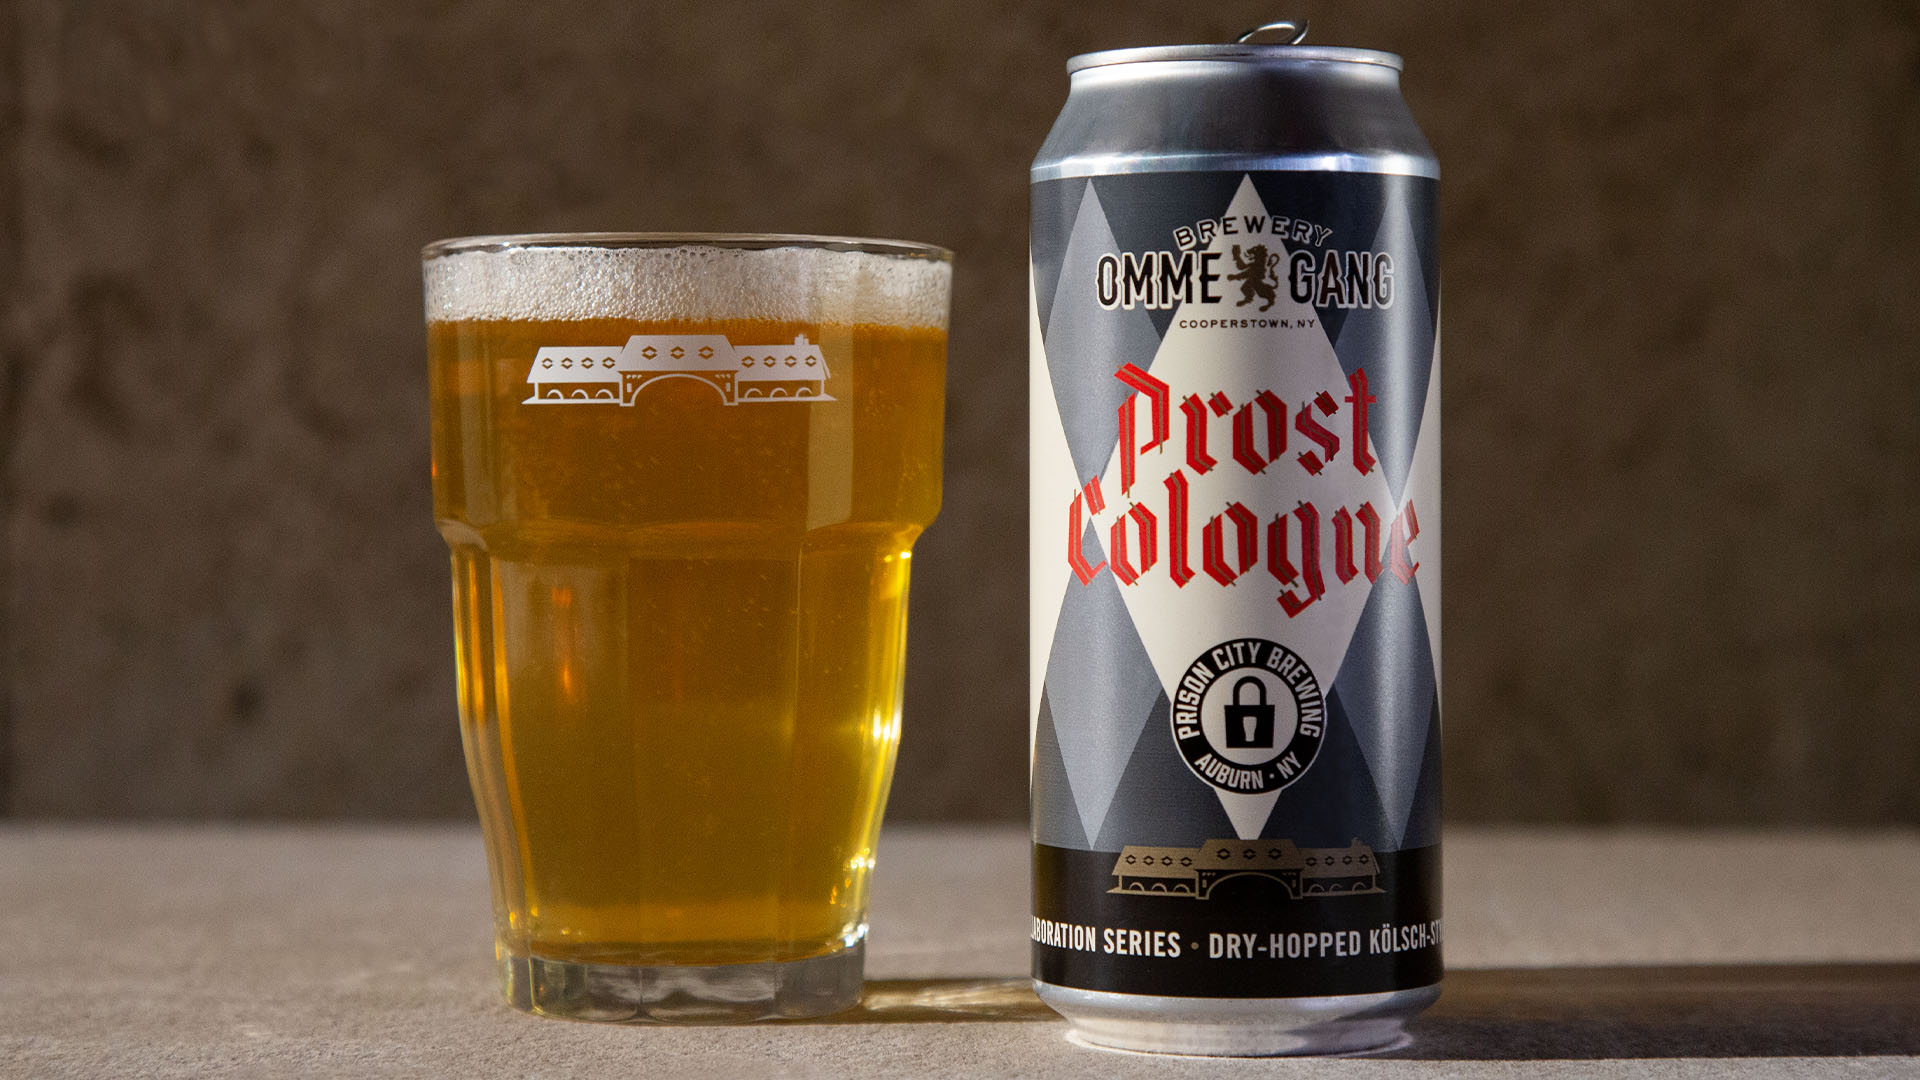 Brewery Ommegang & Prison City Pub & Brewery team up for Prost Cologne